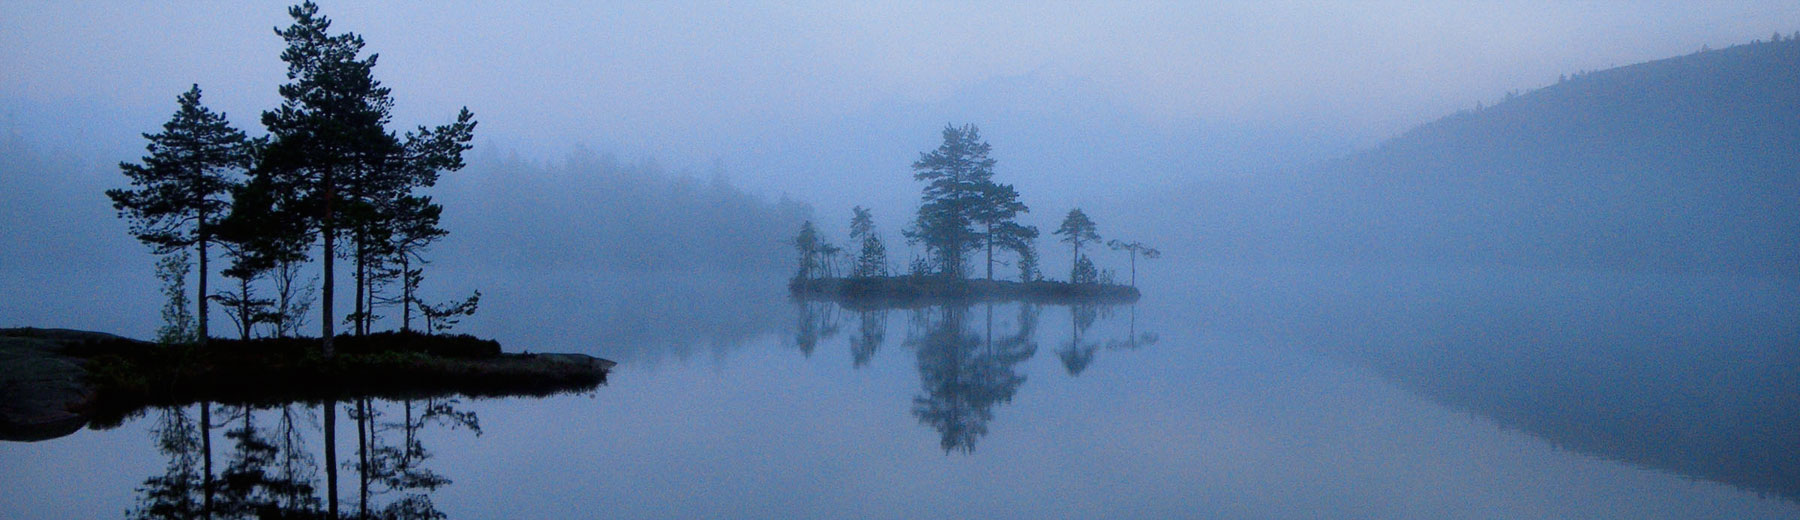 Foggy lake in Algonquin Park, Ontario